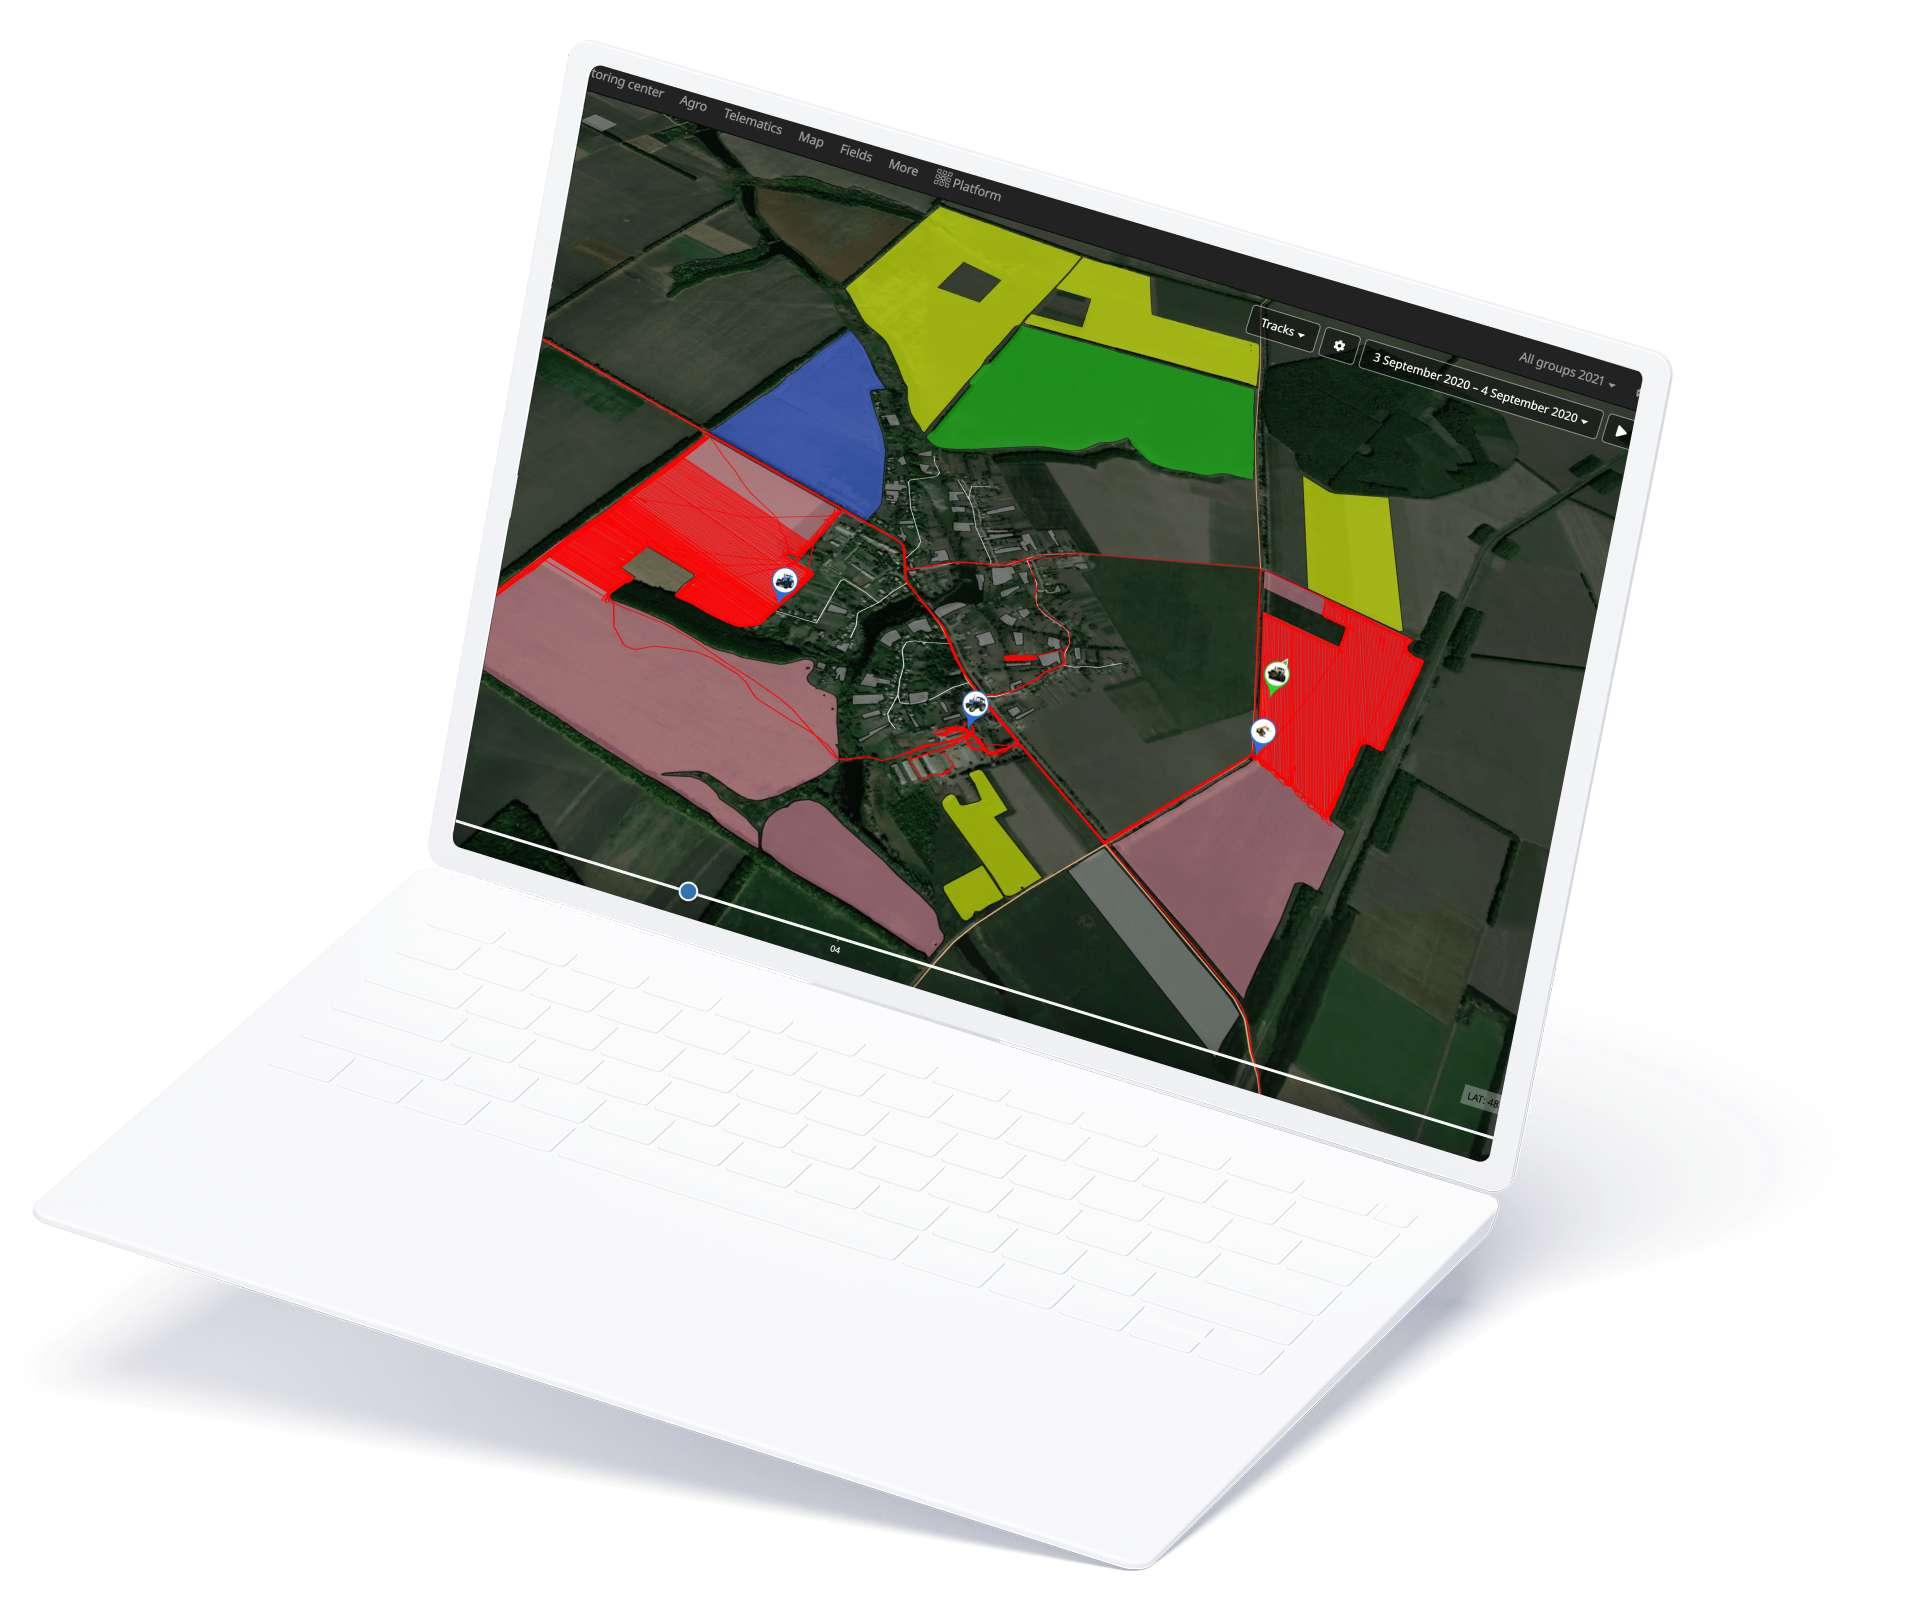 Cropwise operations available on computer